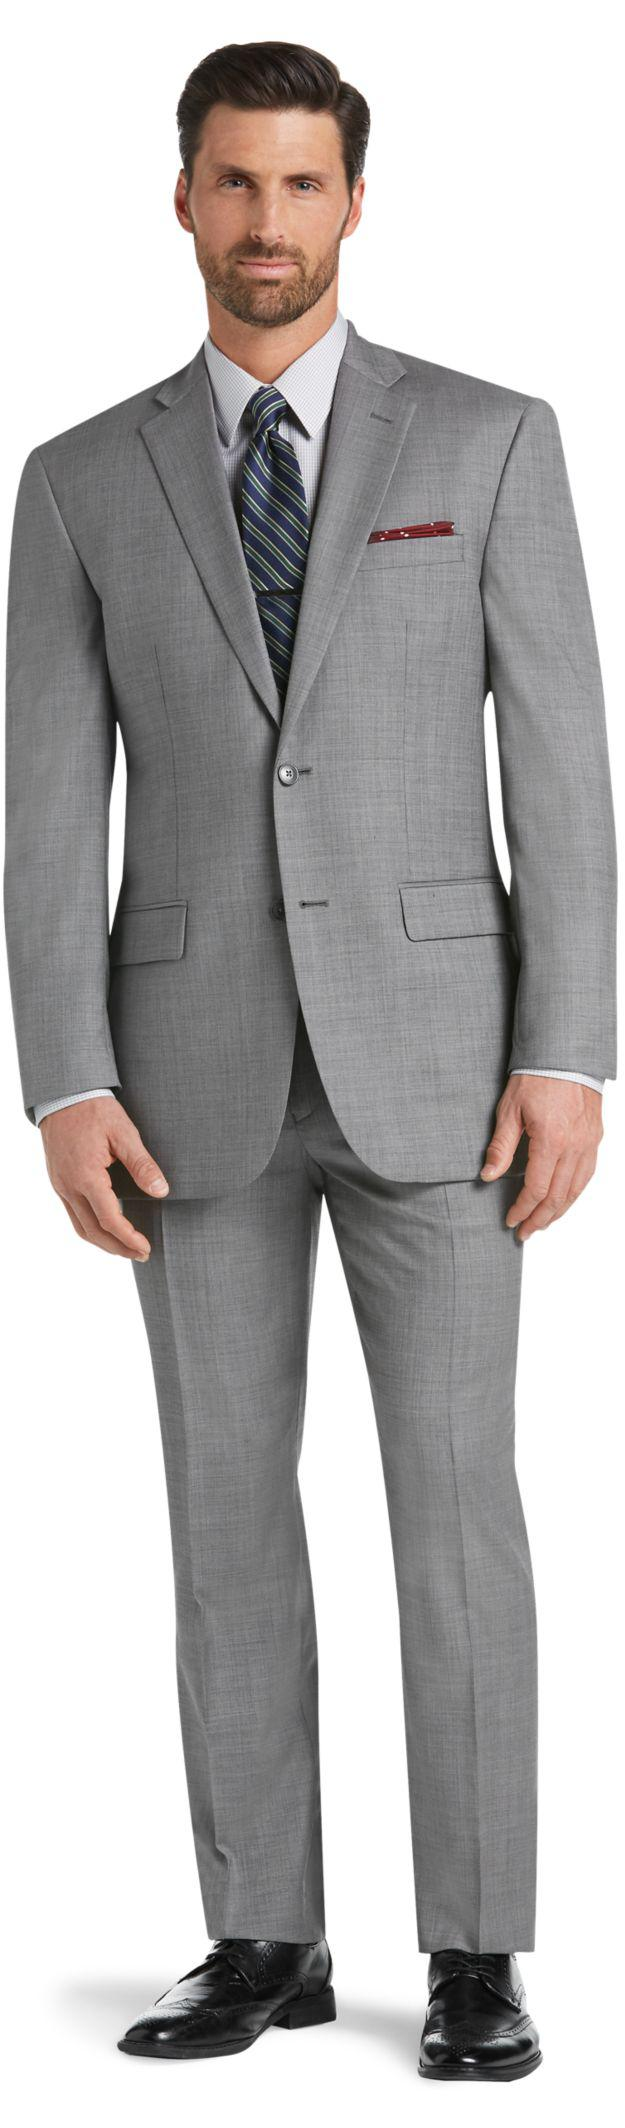 Jos. A. Bank Gray Traveler Collection Traditional Fit Sharkskin Suit for men